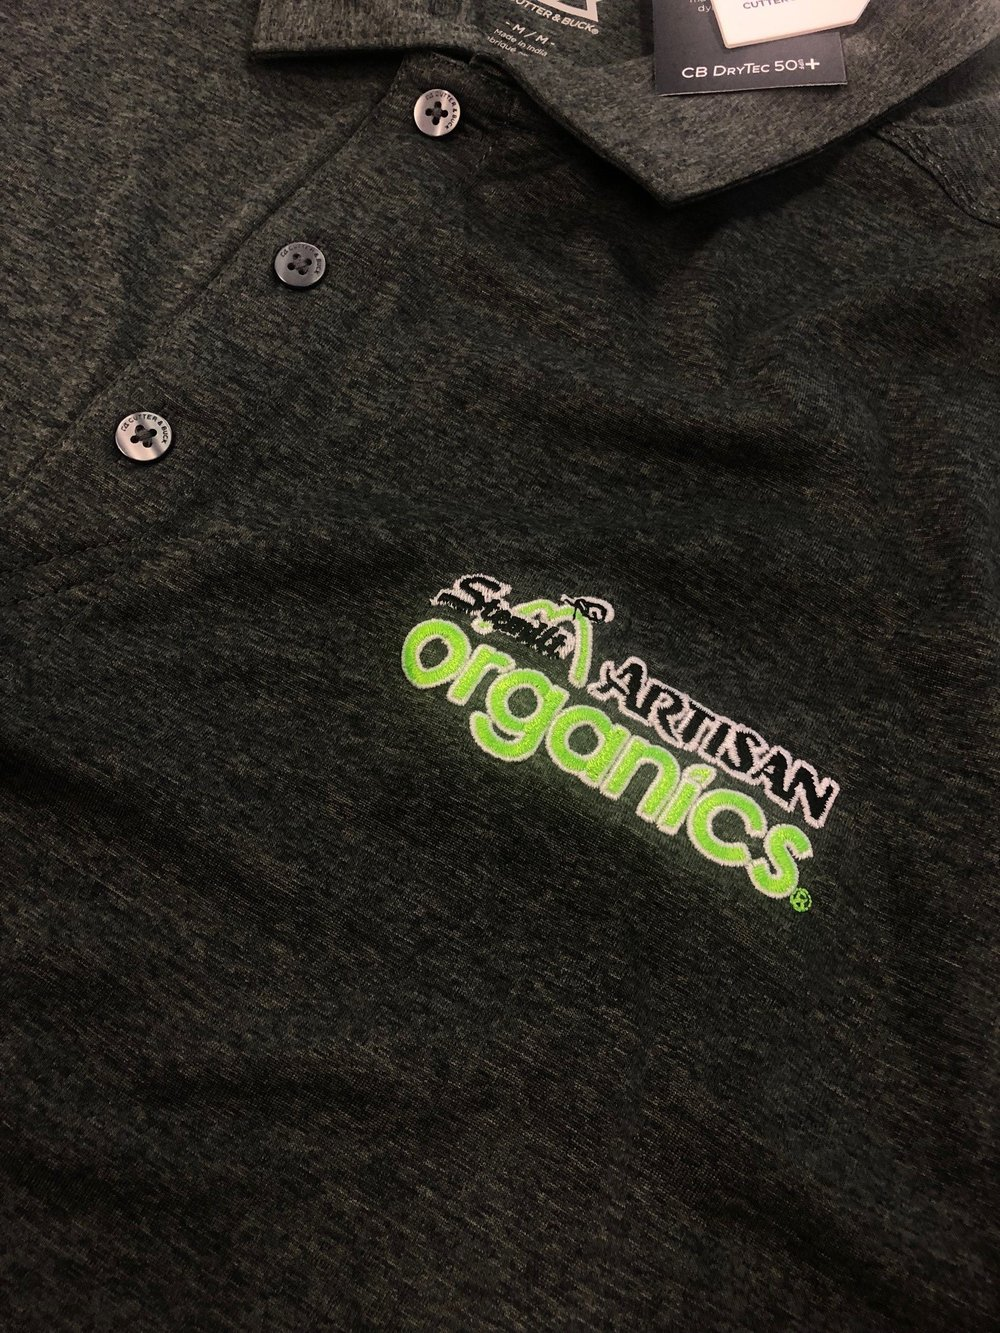 logounltd_laser_etching_embroidery_screen_printing_apparel_uniform_custom_tshirts_kirkland_bellevue_seattle_redmond_woodinville_branded_merchandise_promotional_products_logo_unltd_stemilt_produce (1).jpg